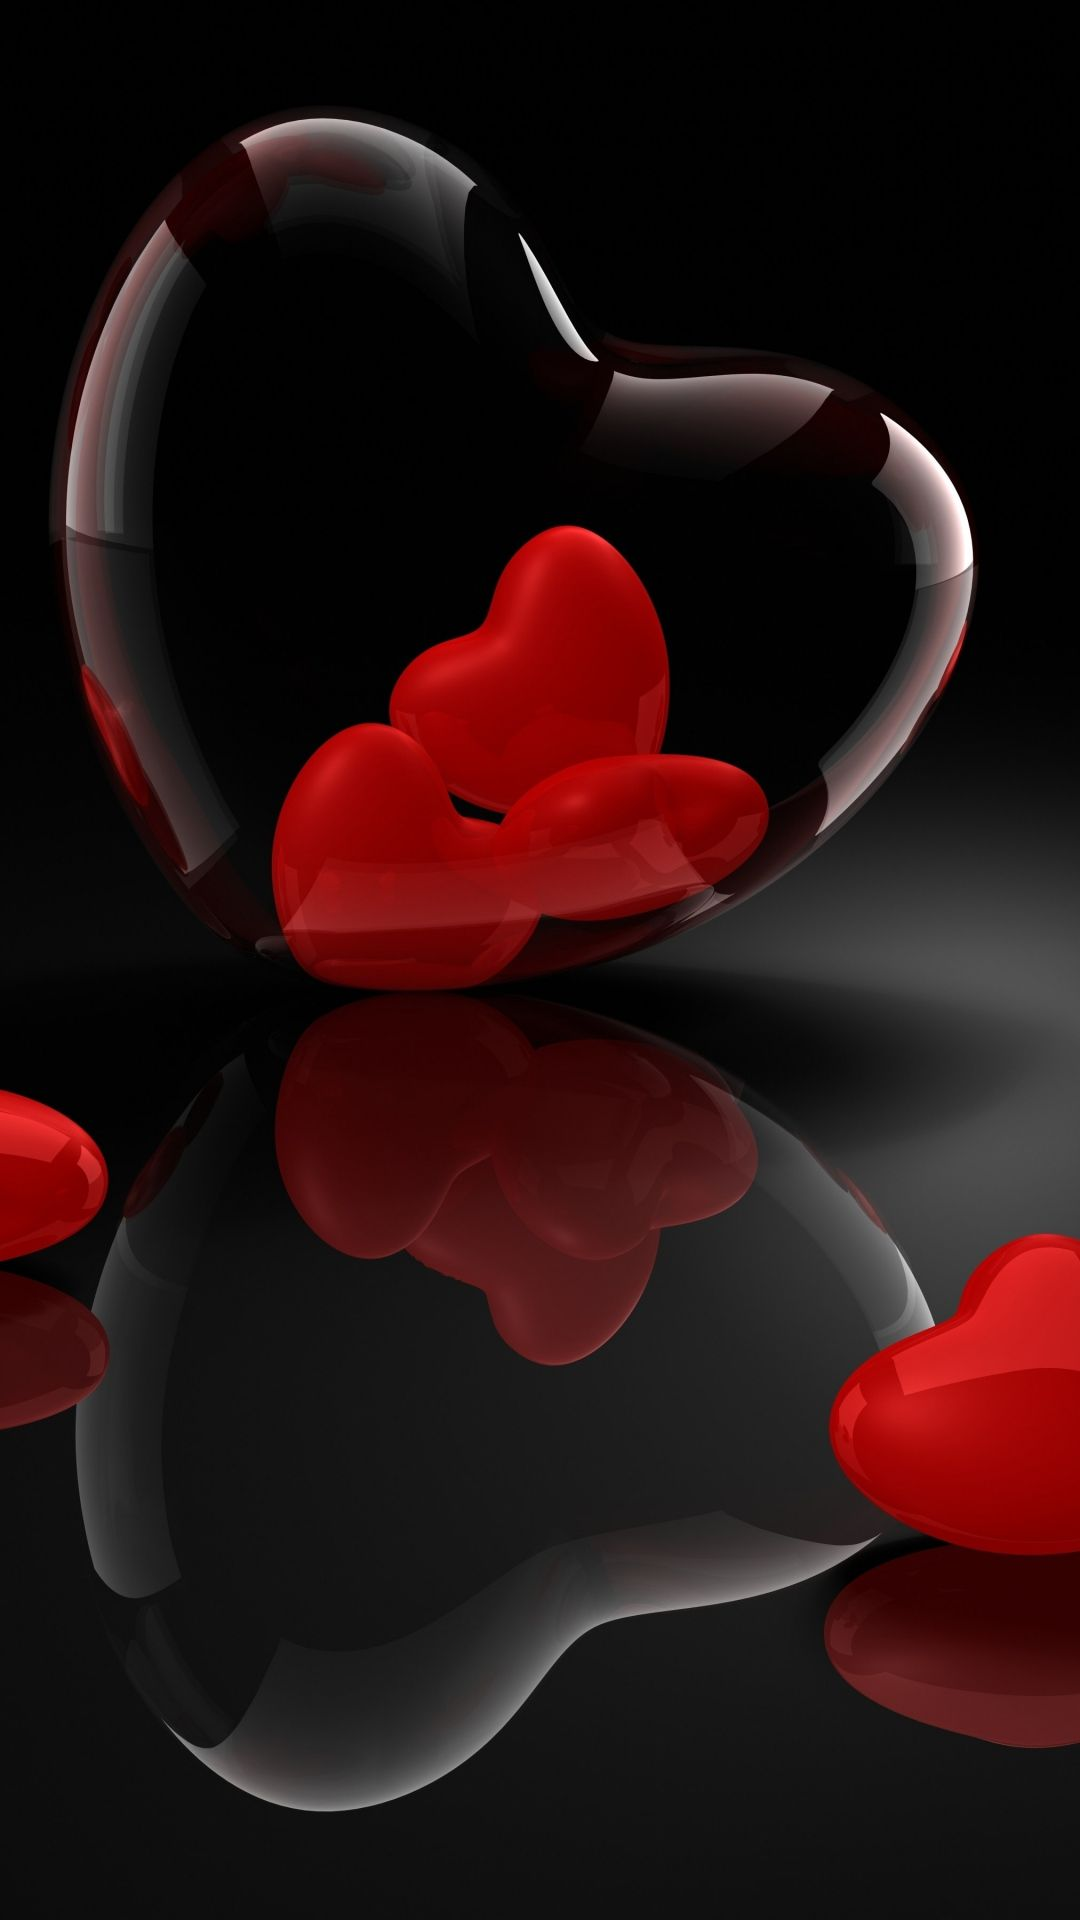 Heart Glass 3d Reflection Heart Wallpaper Love Wallpaper Abstract